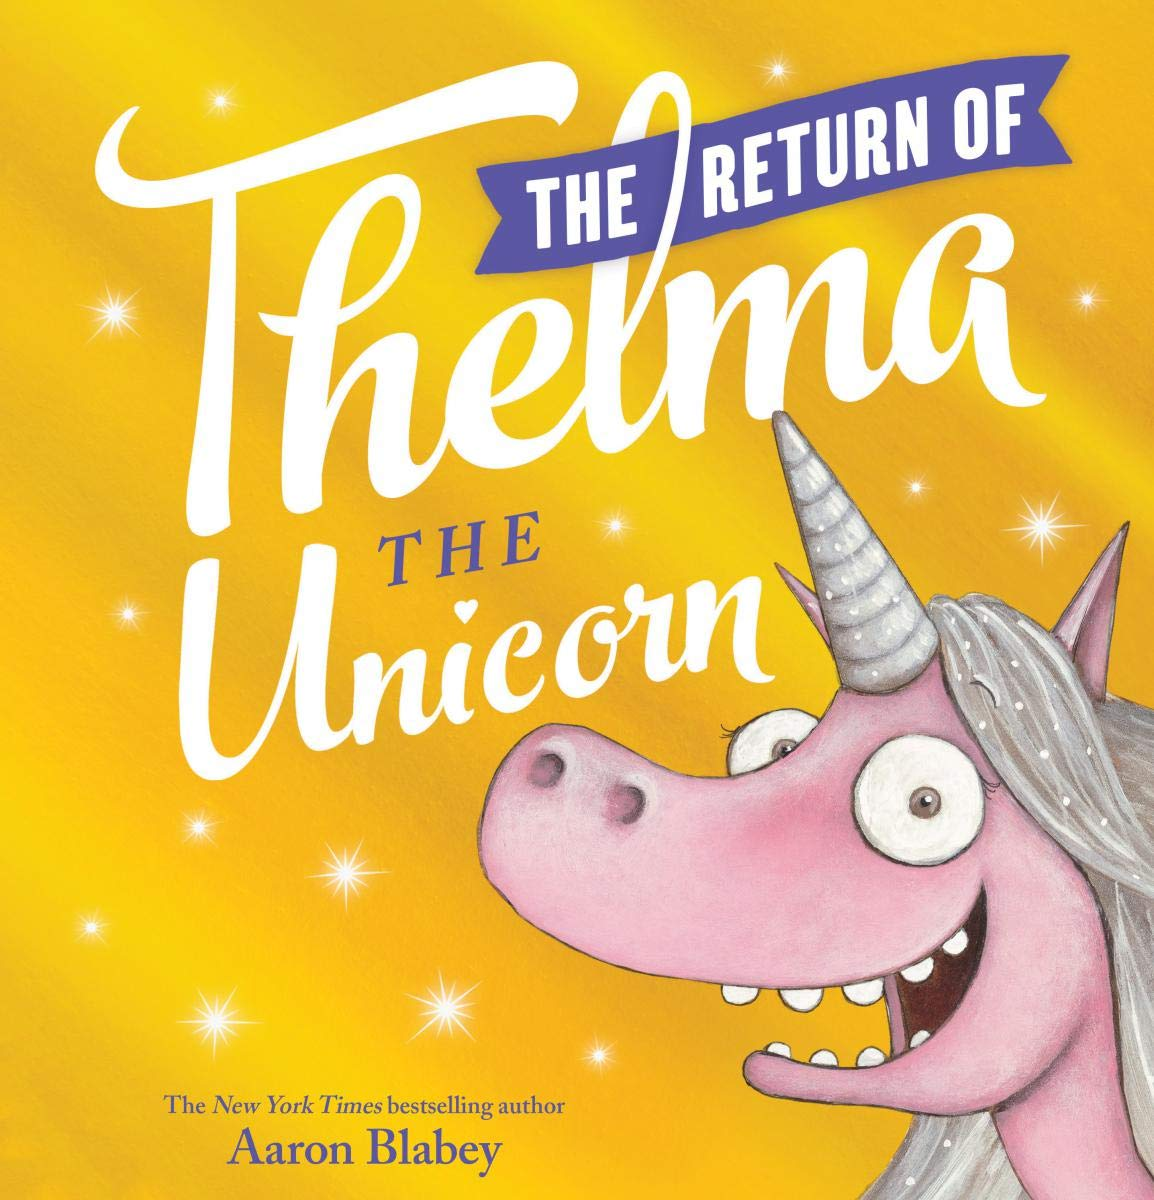 The Return of Thelma the Unicor